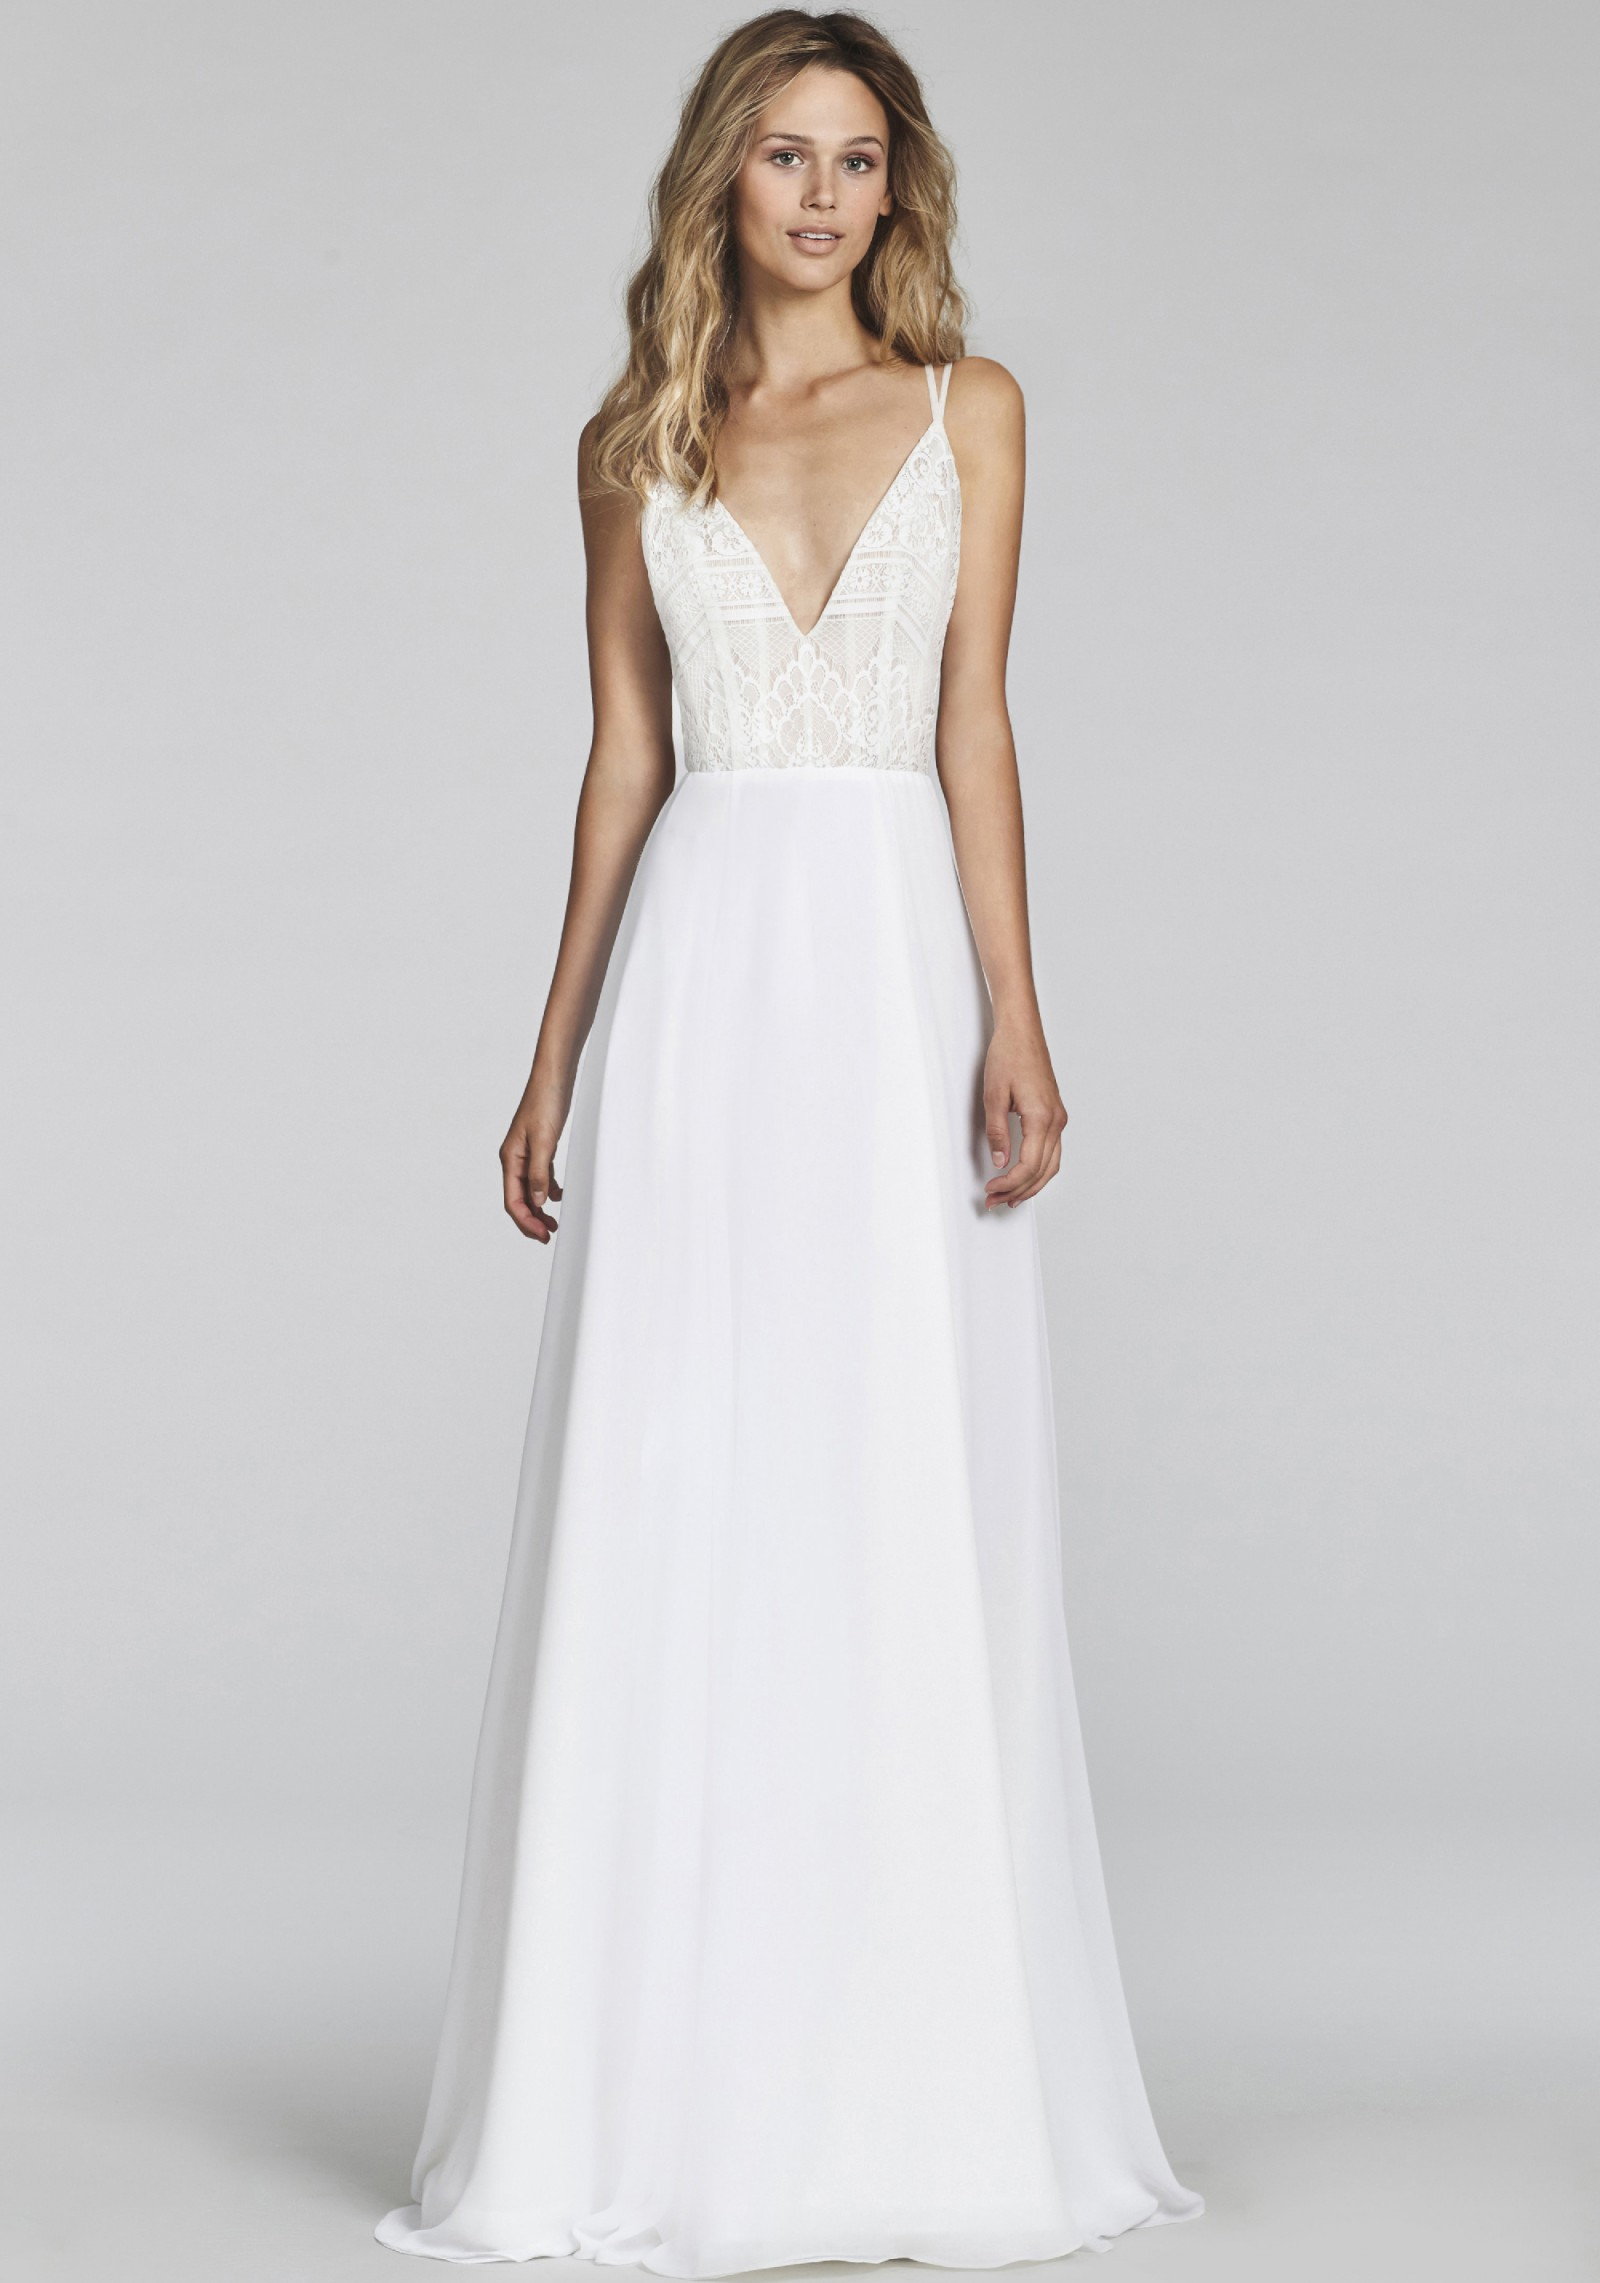 Hayley paige wedding dresses on still white hayley paige new ombrellifo Choice Image